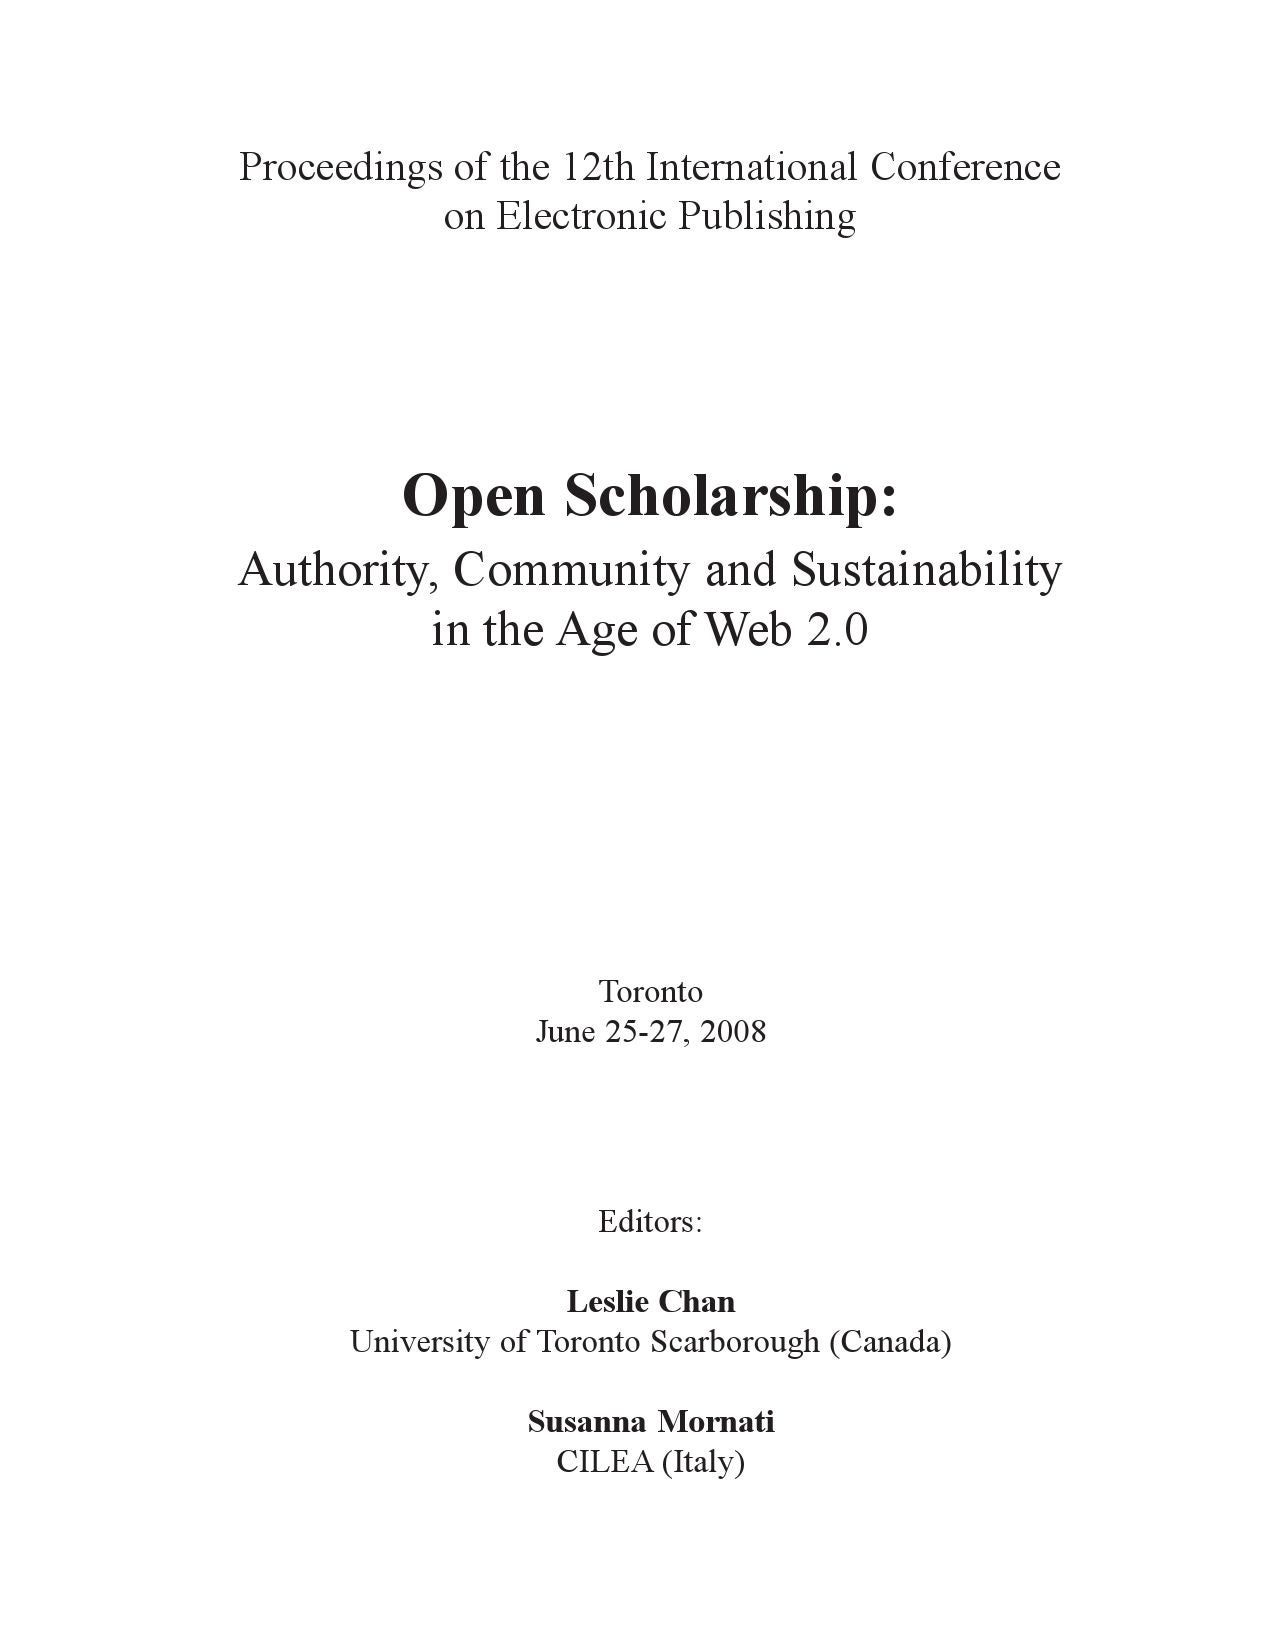 Open scholarship by leslie chan issuu fandeluxe Images